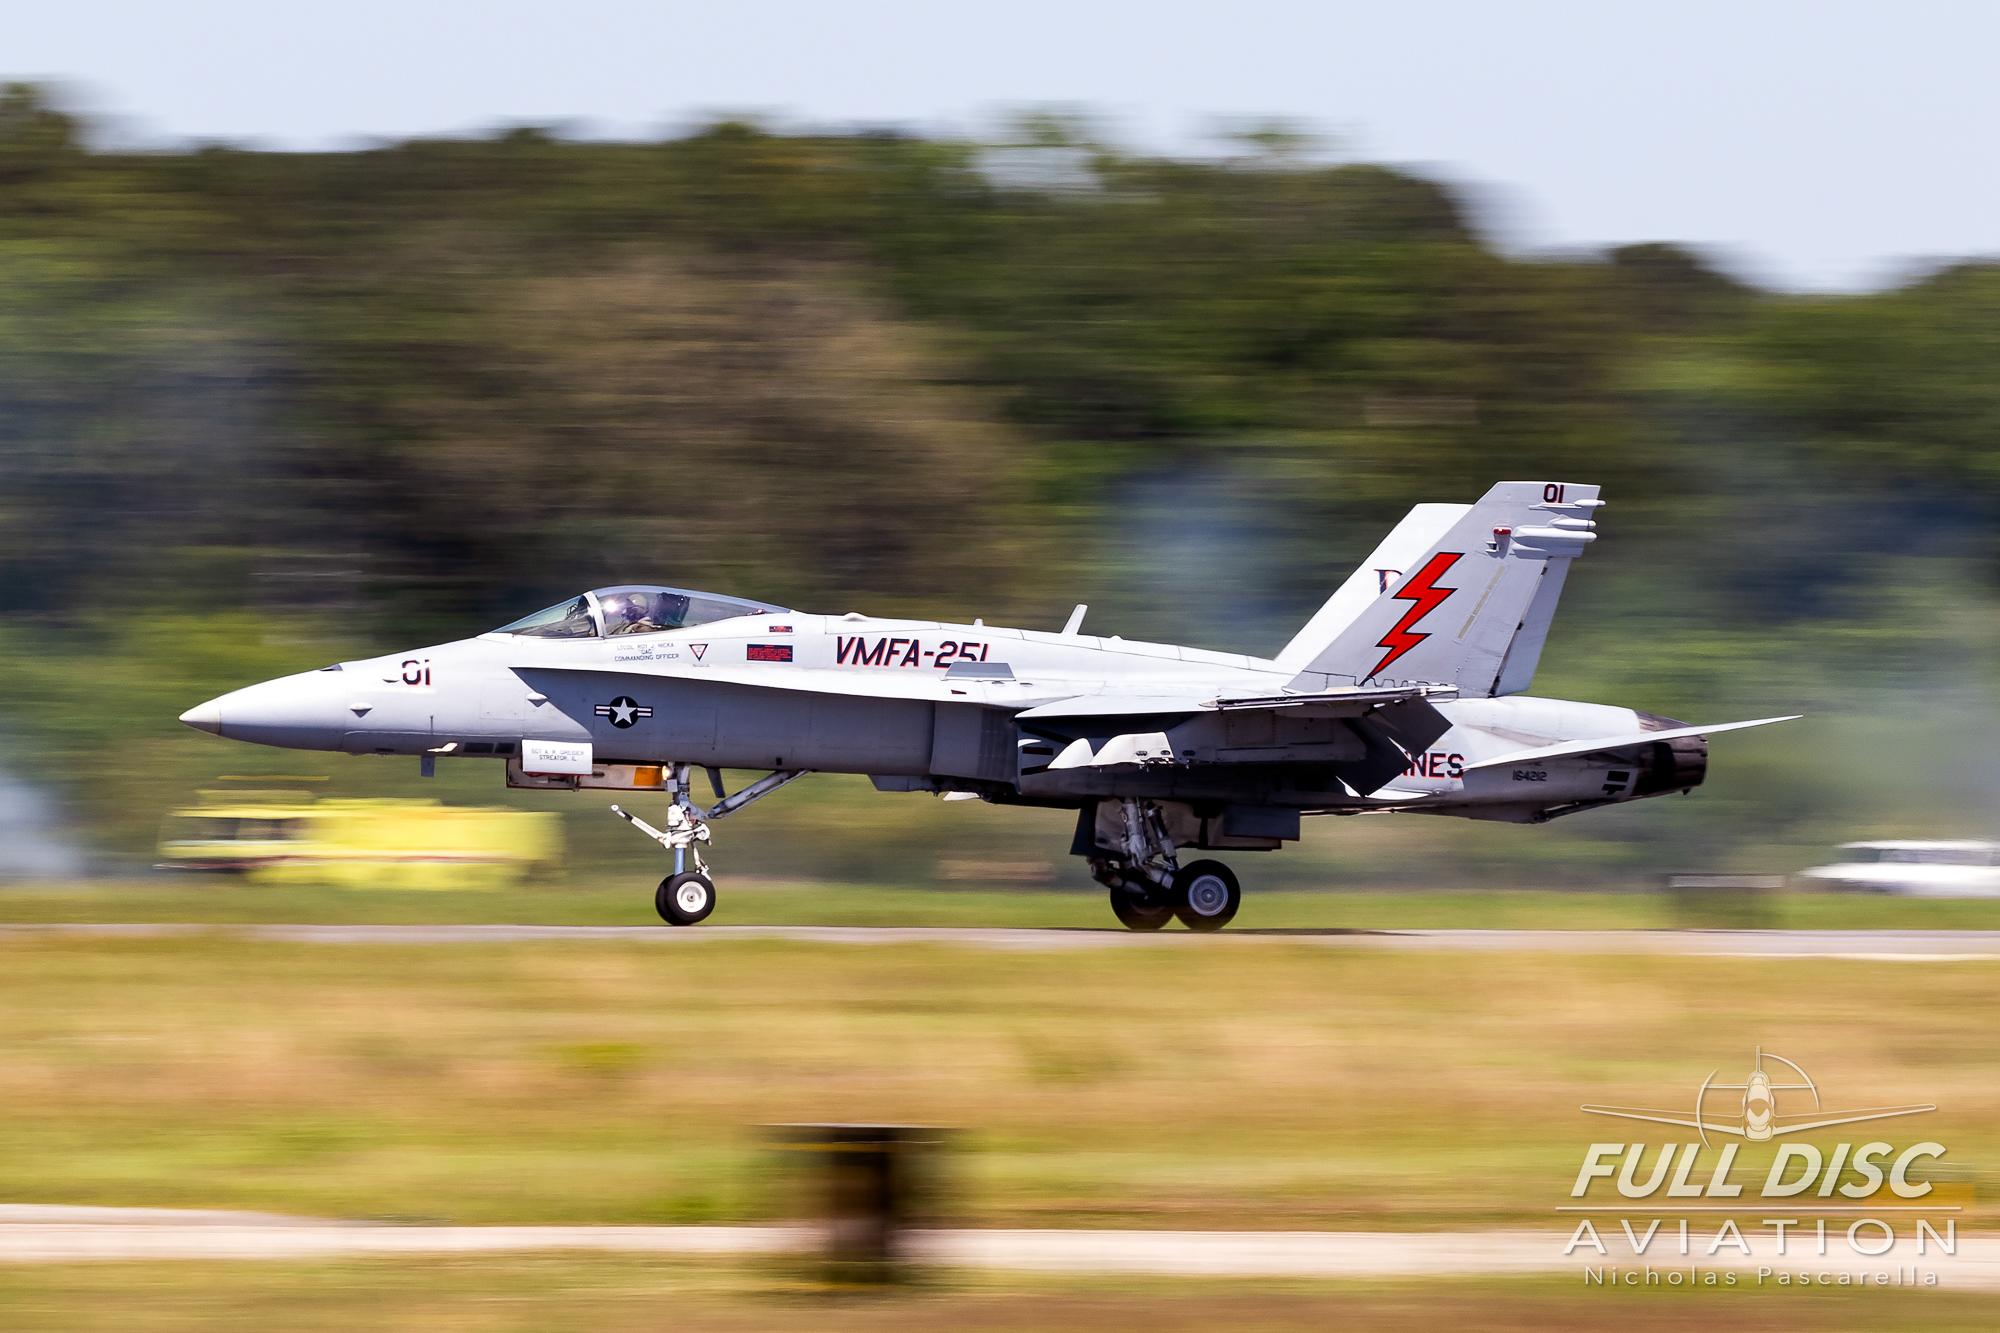 f18_landing_nicholaspascarella_fulldiscavation_aviation_airshow.jpg